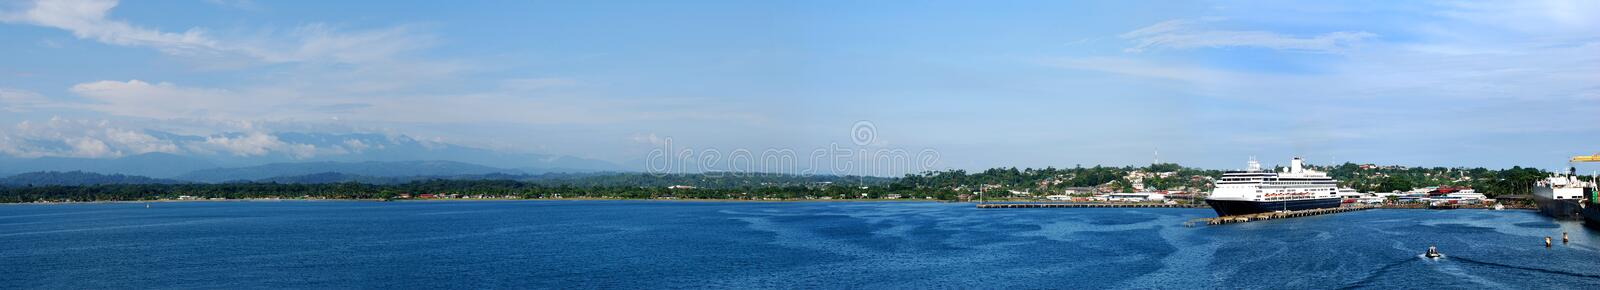 Port Limon. The panoramic view of a port and the city Limon, Costa Rica royalty free stock image